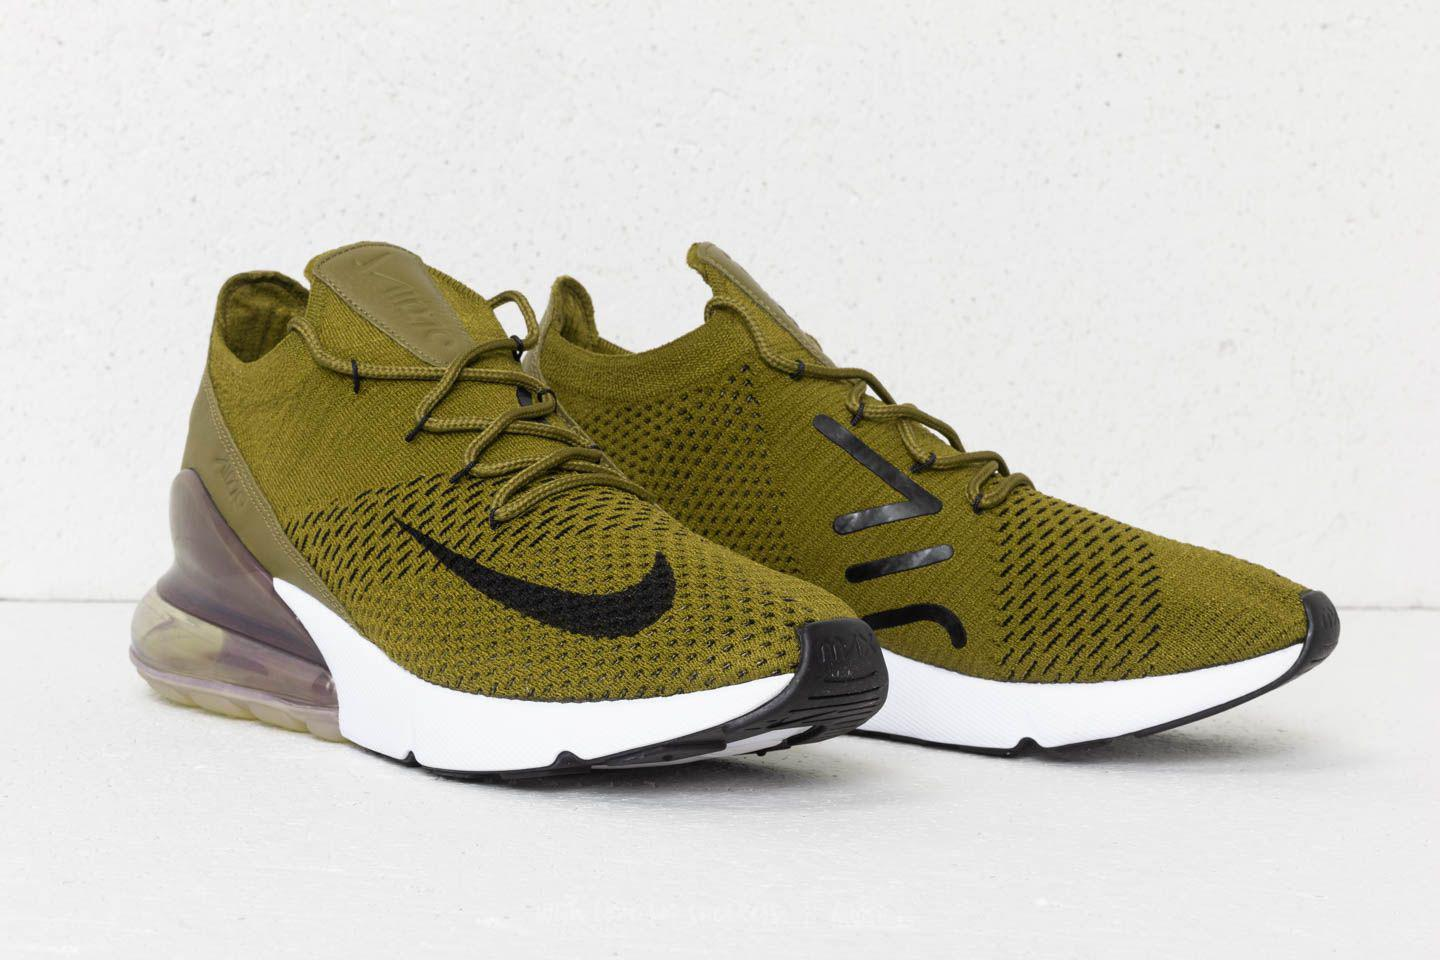 Nike Green Air Max 270 Flyknit Olive Flak Black sepia Stone for men